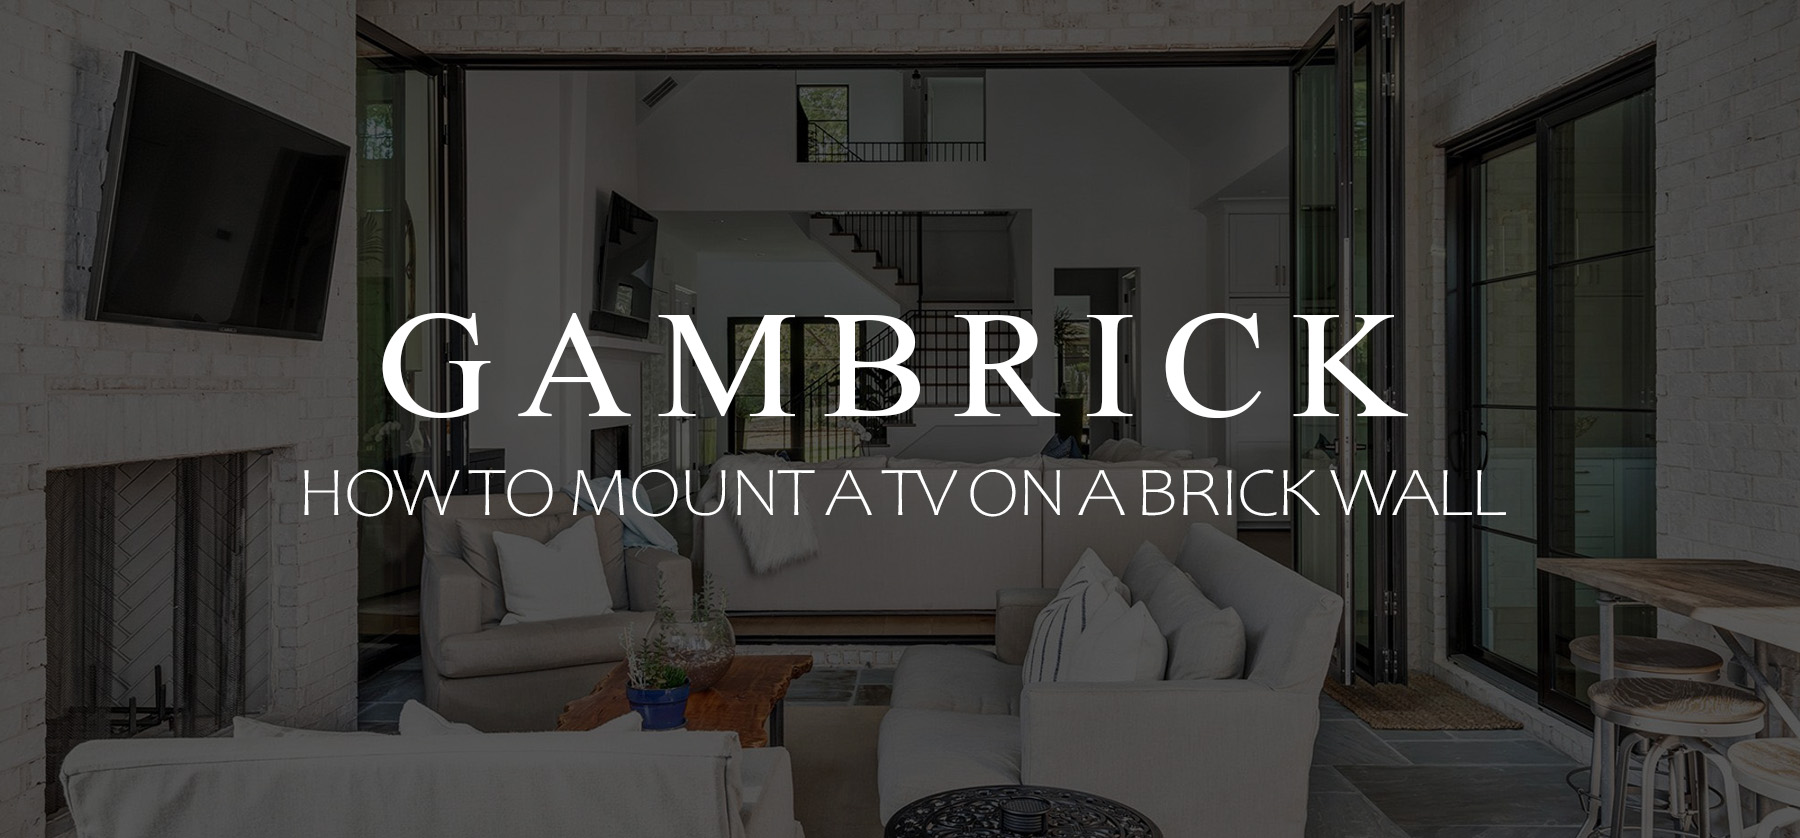 How to mount a TV on a brick wall Banner 1